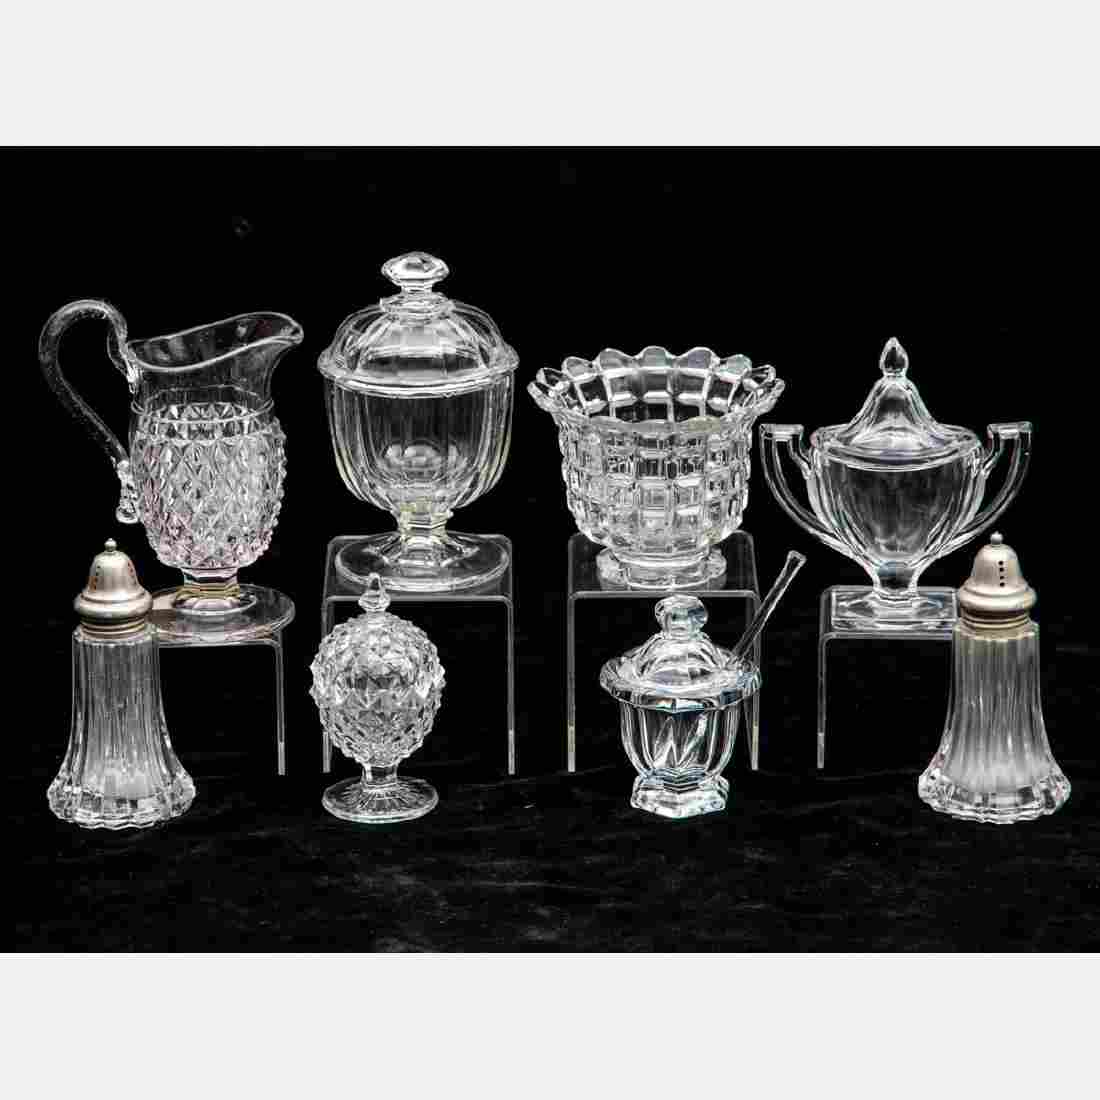 A Miscellaneous Collection of Clear Pressed Glass